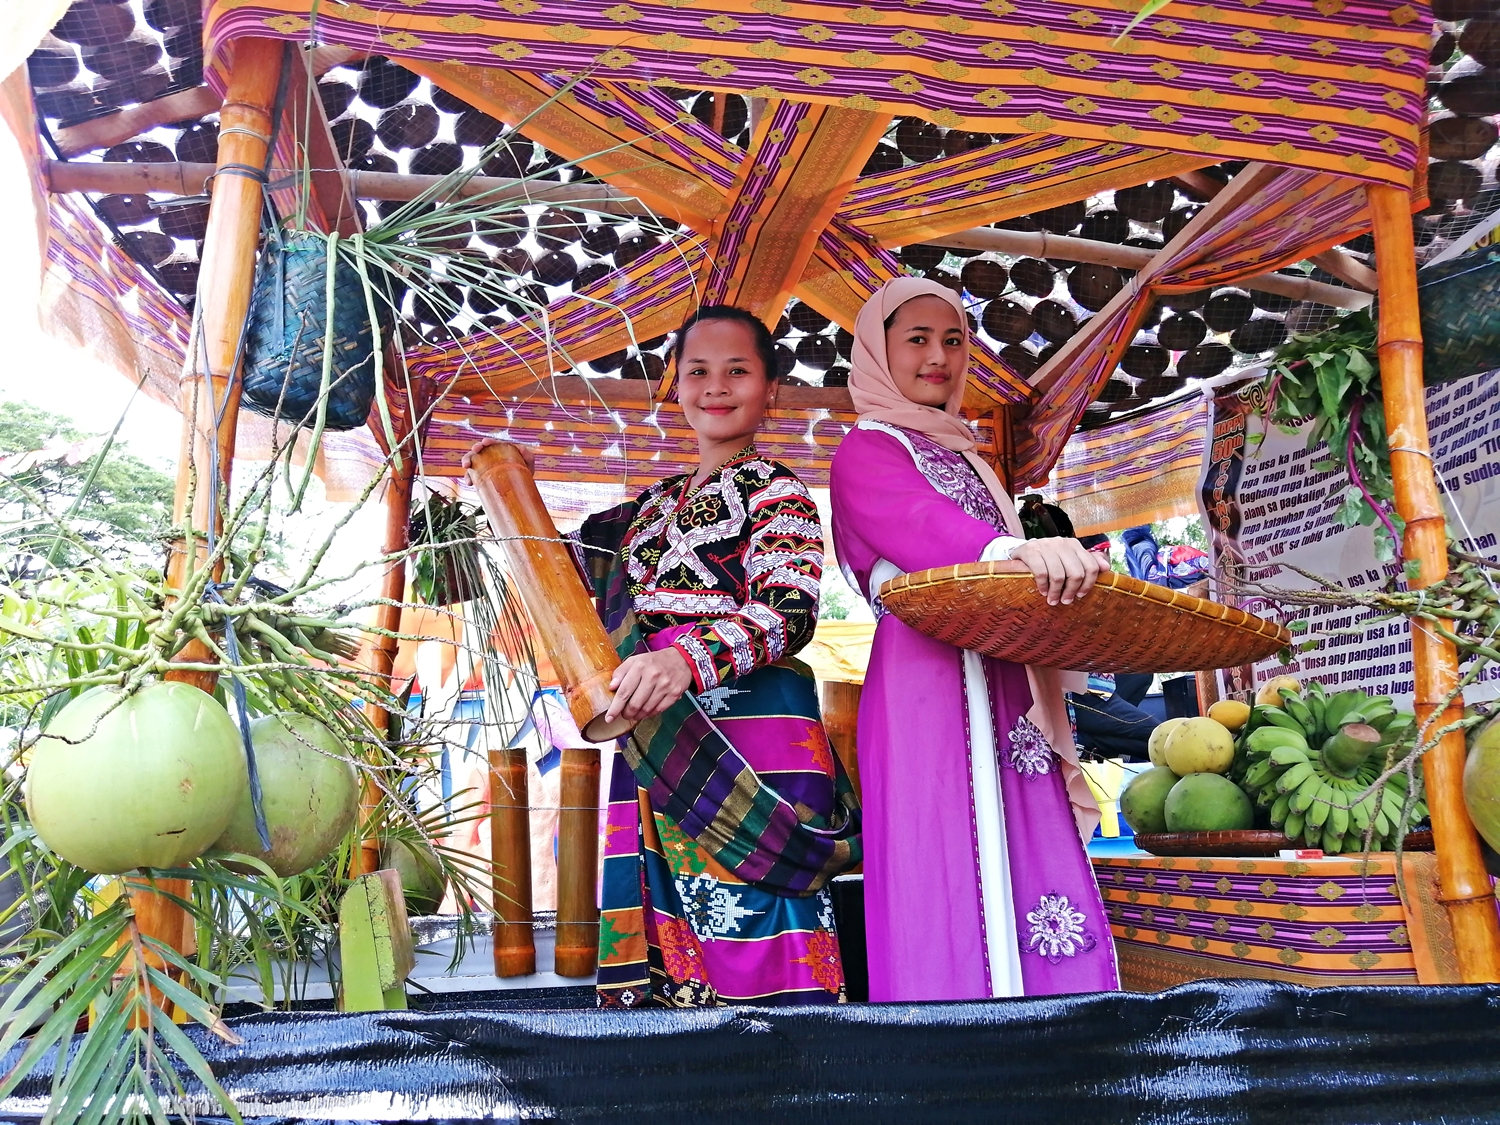 Kestebeng Festival in Maasim is one of the must-see festivals in Sarangani